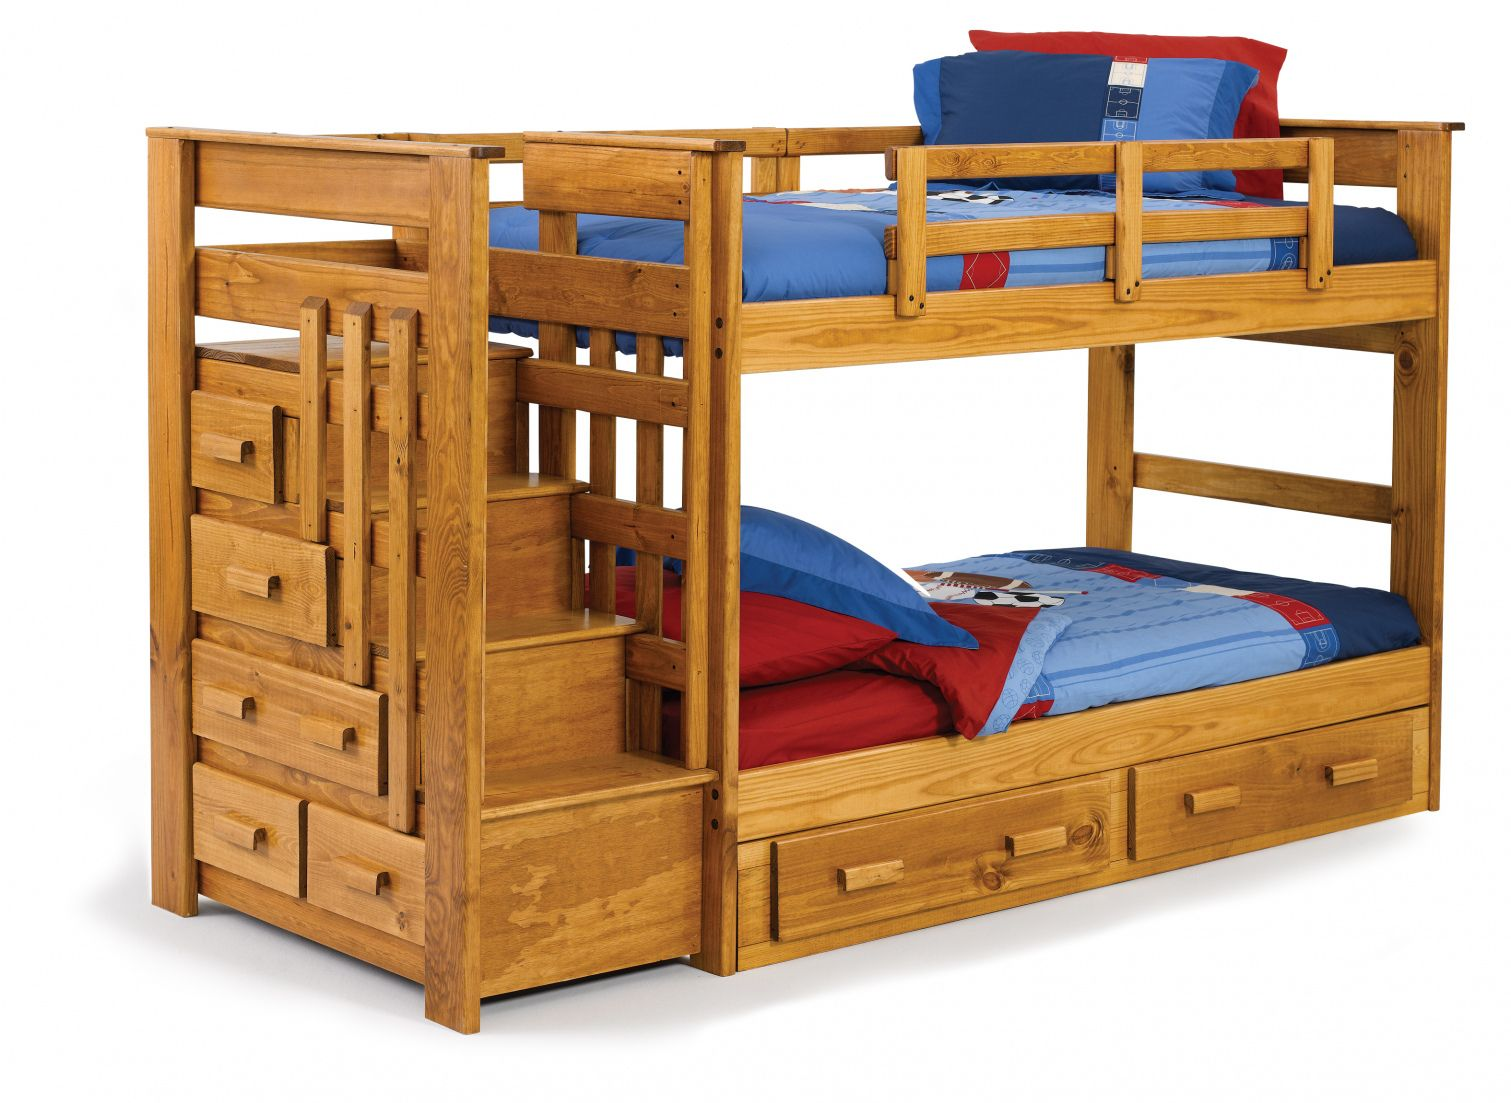 Cheap Kids Beds Online Pin By Rahayu12 On Simple Room Low Budget Modern And Beautiful